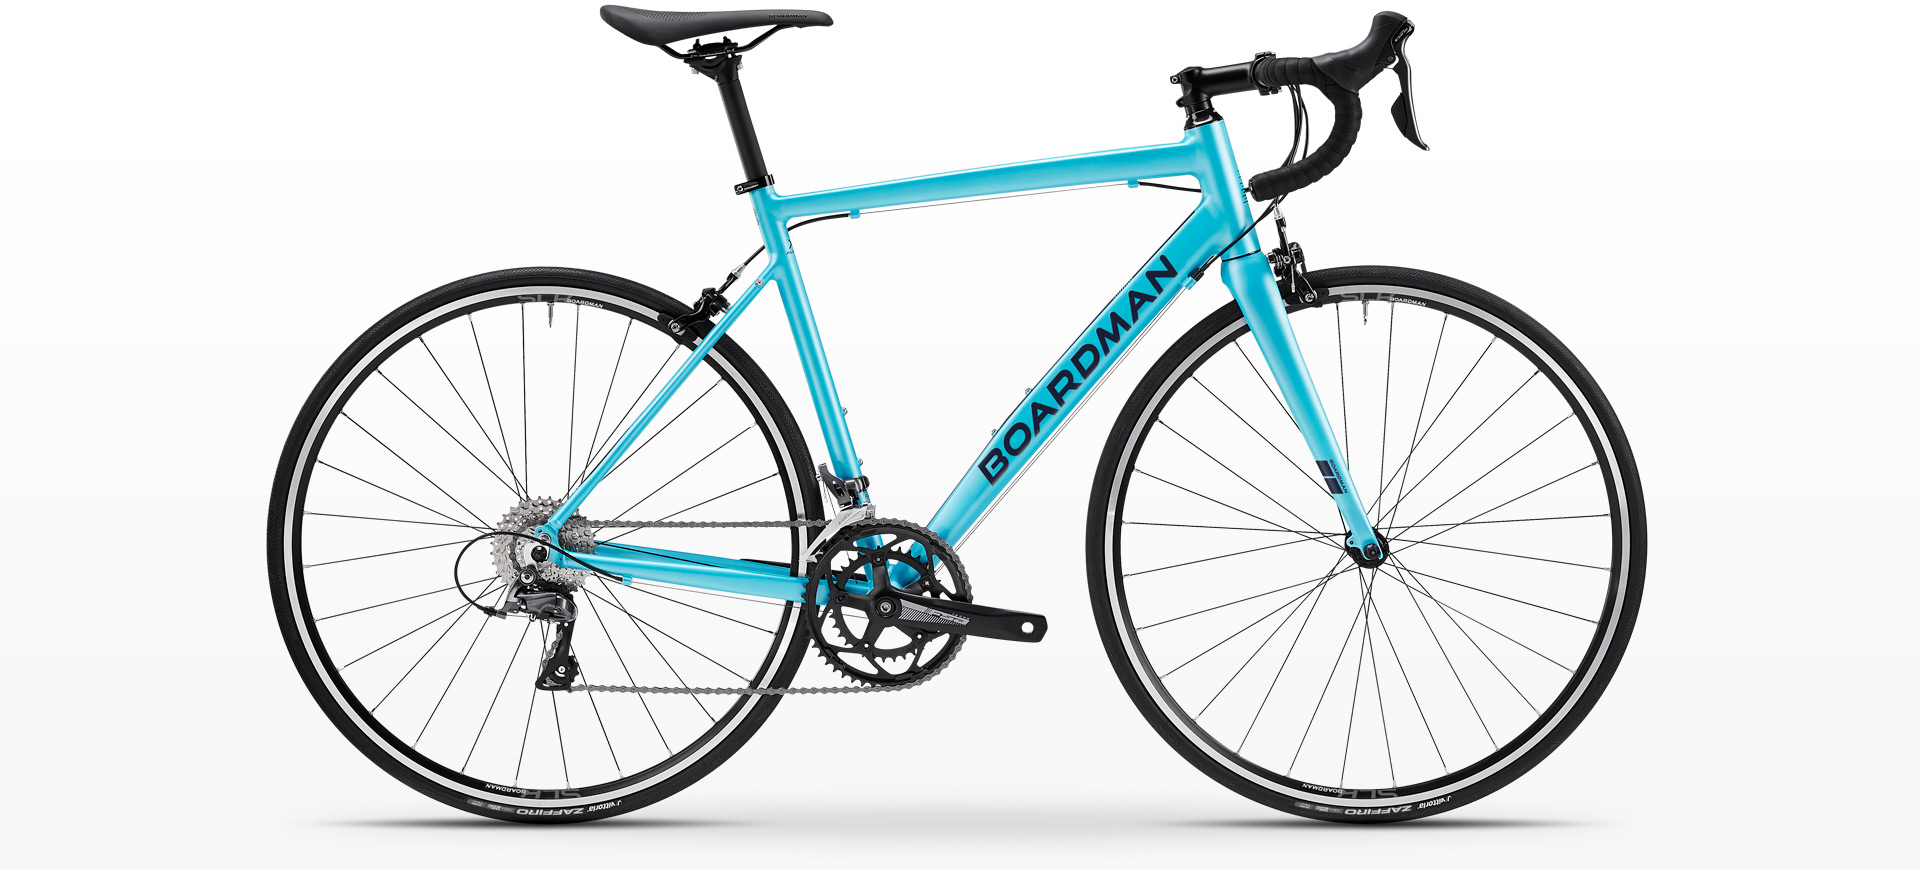 Boardman SLR 8.6 Womens Alloy Road Bike in Metallic Cyan